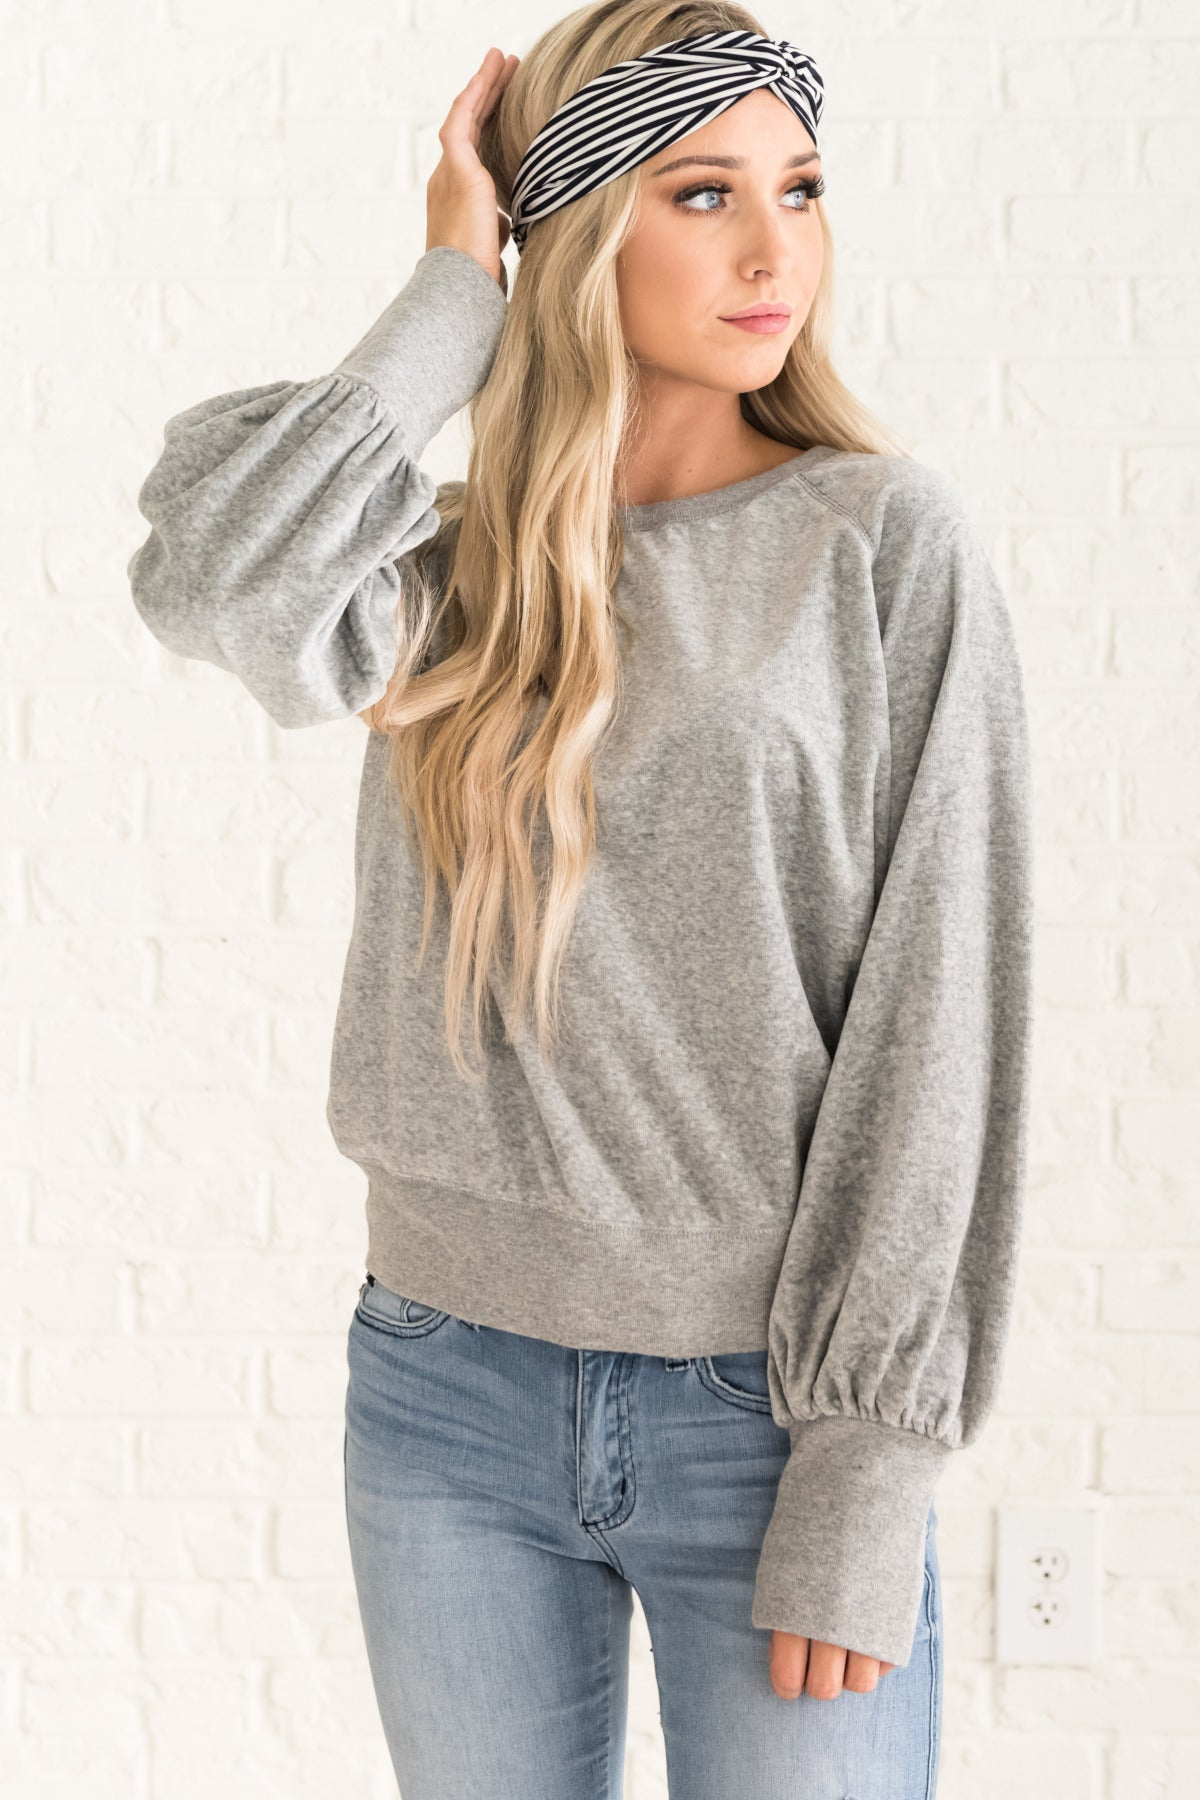 Heather Gray Velvet Sweatshirt Pullover Sweaters with Ribbed Details and Bishop Sleeves